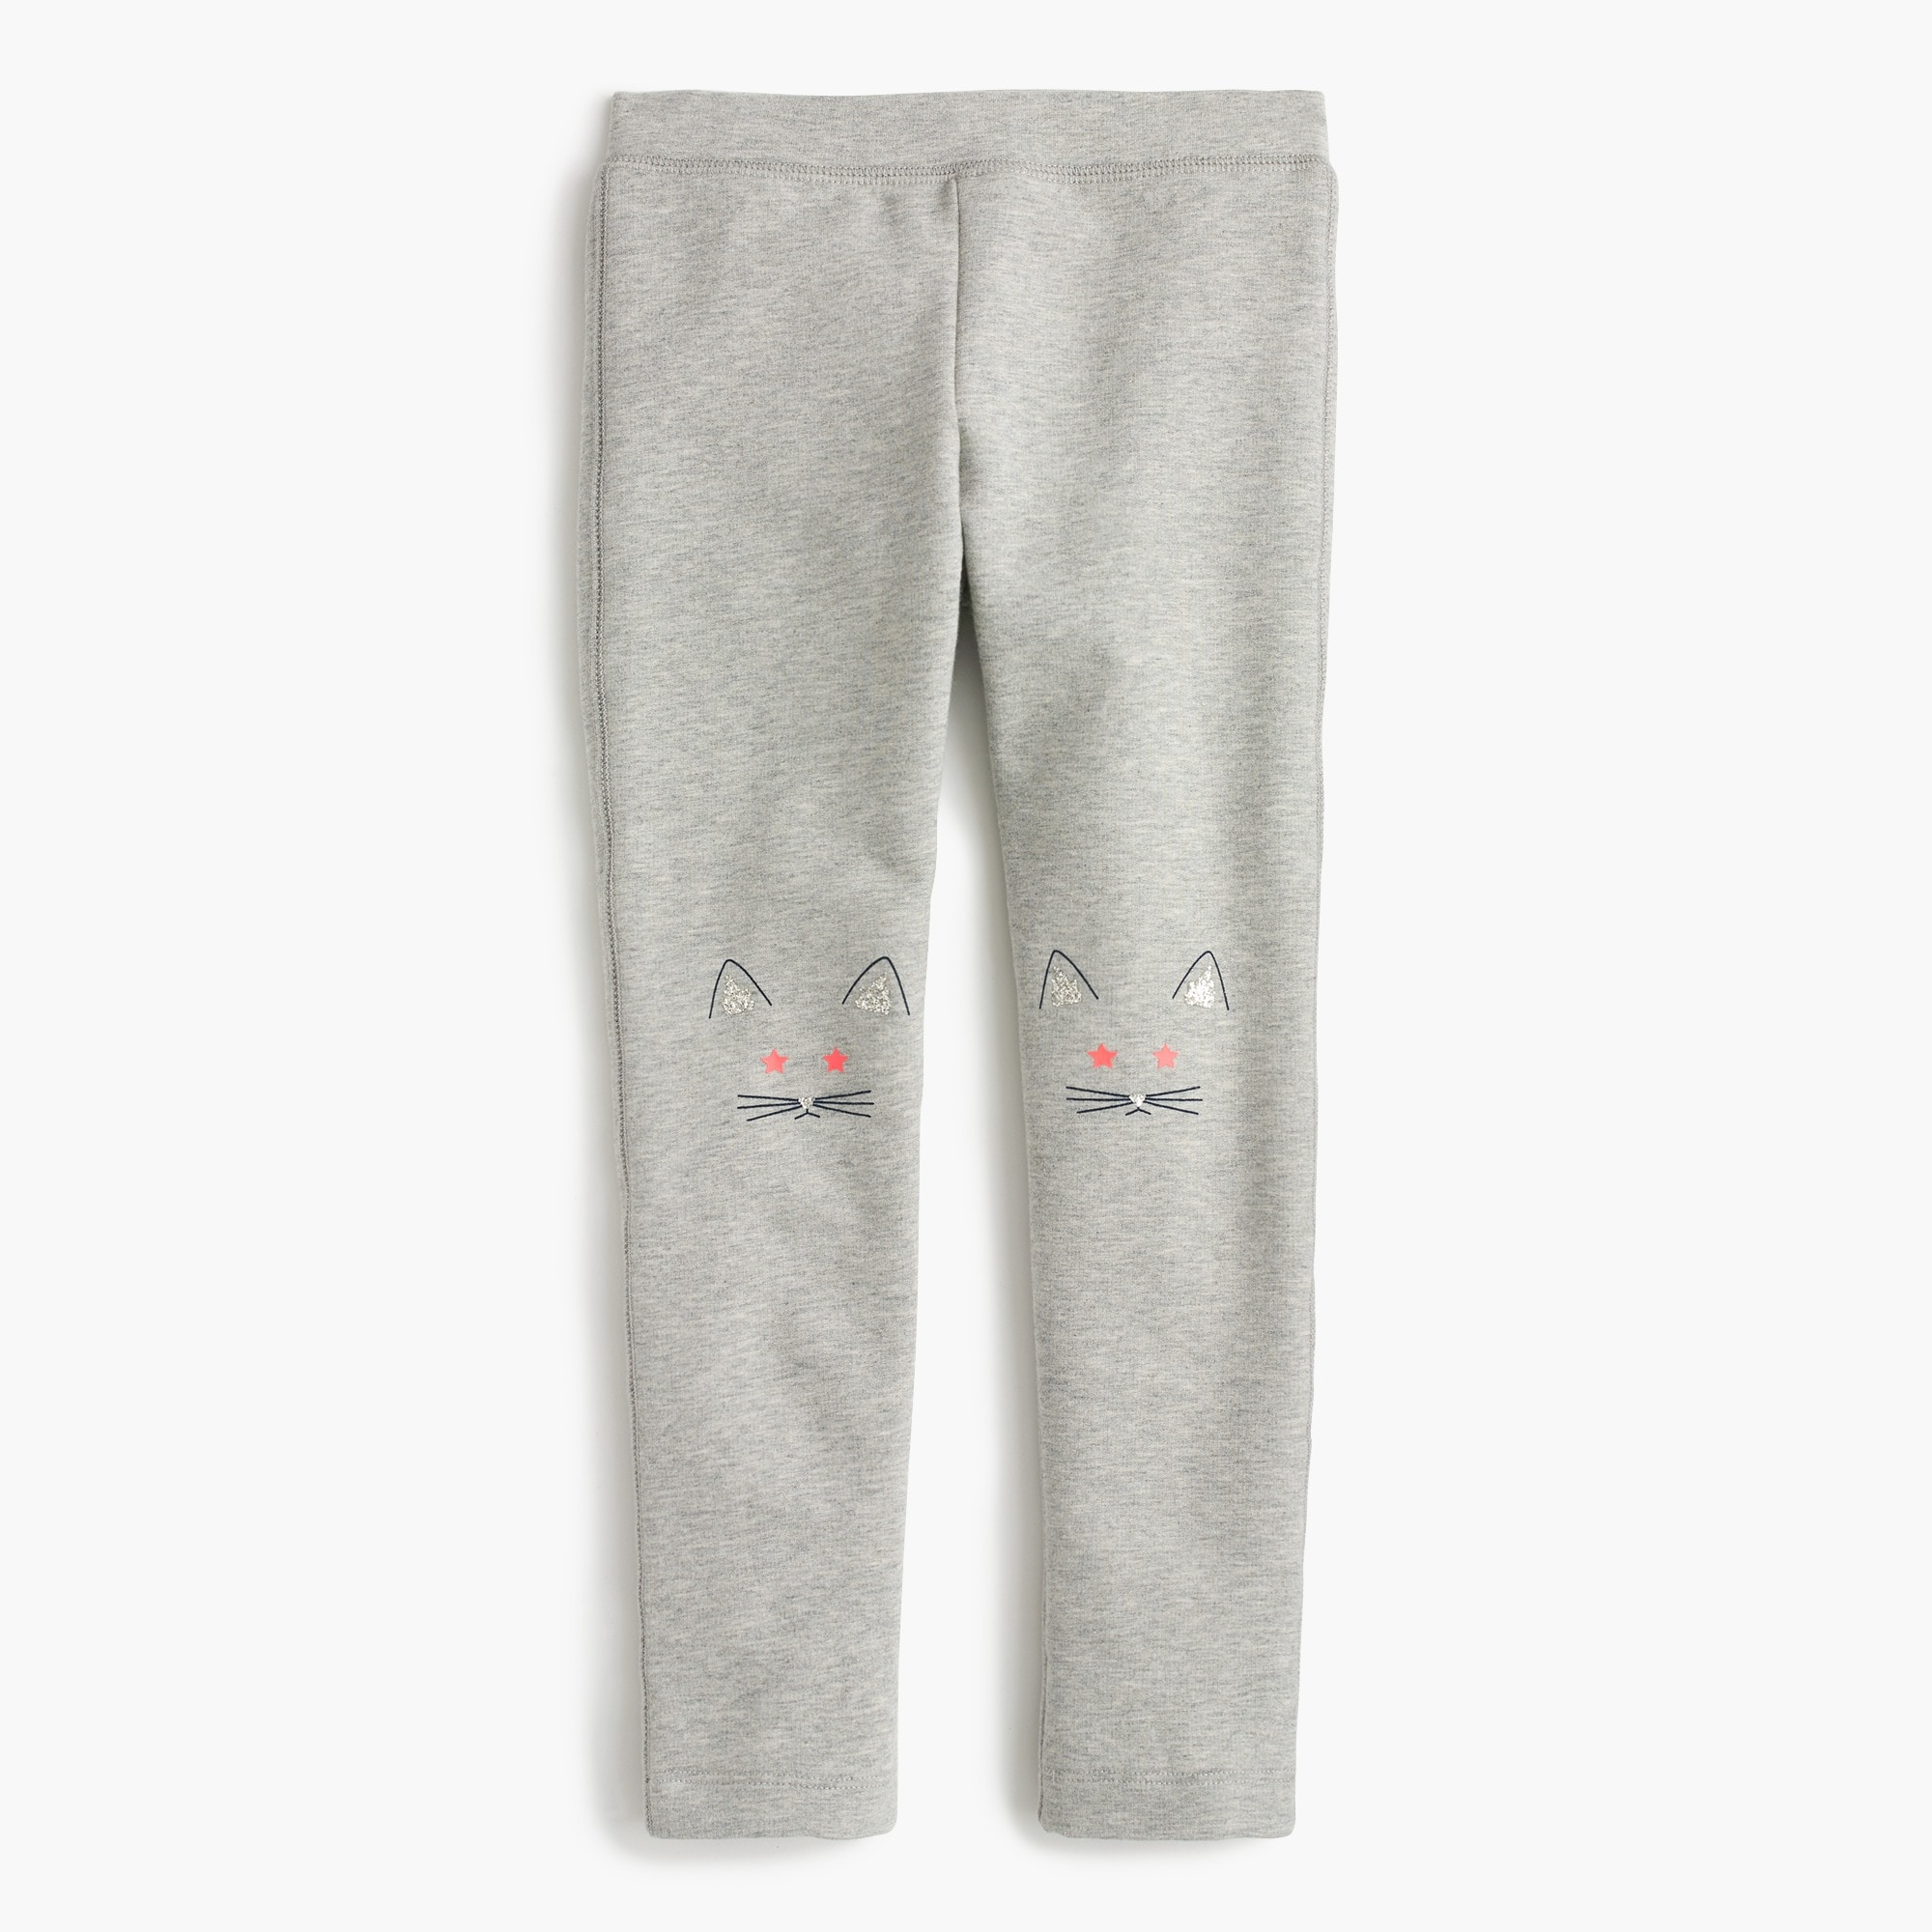 Girls' cozy everyday leggings with kitten knees